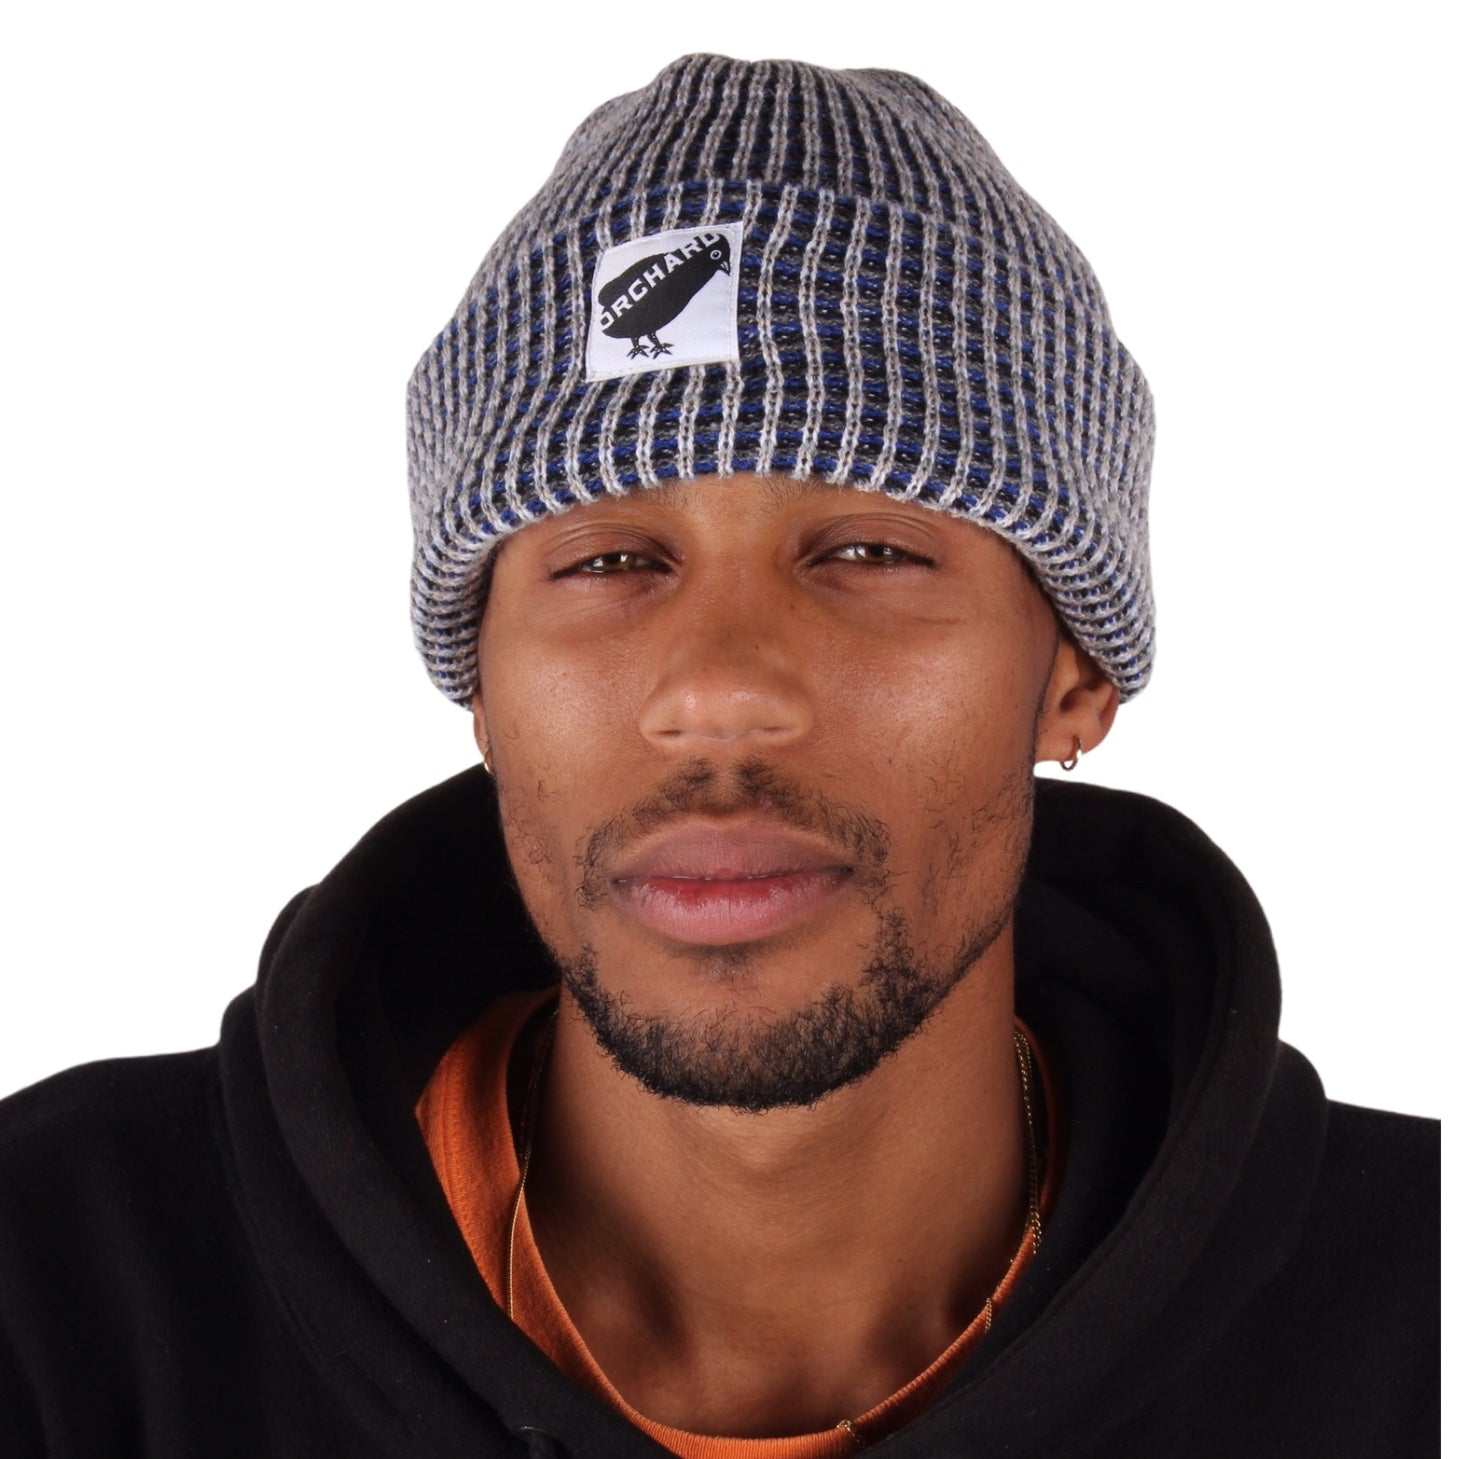 Orchard Black Bird Watch Beanie Blue/Grey/White